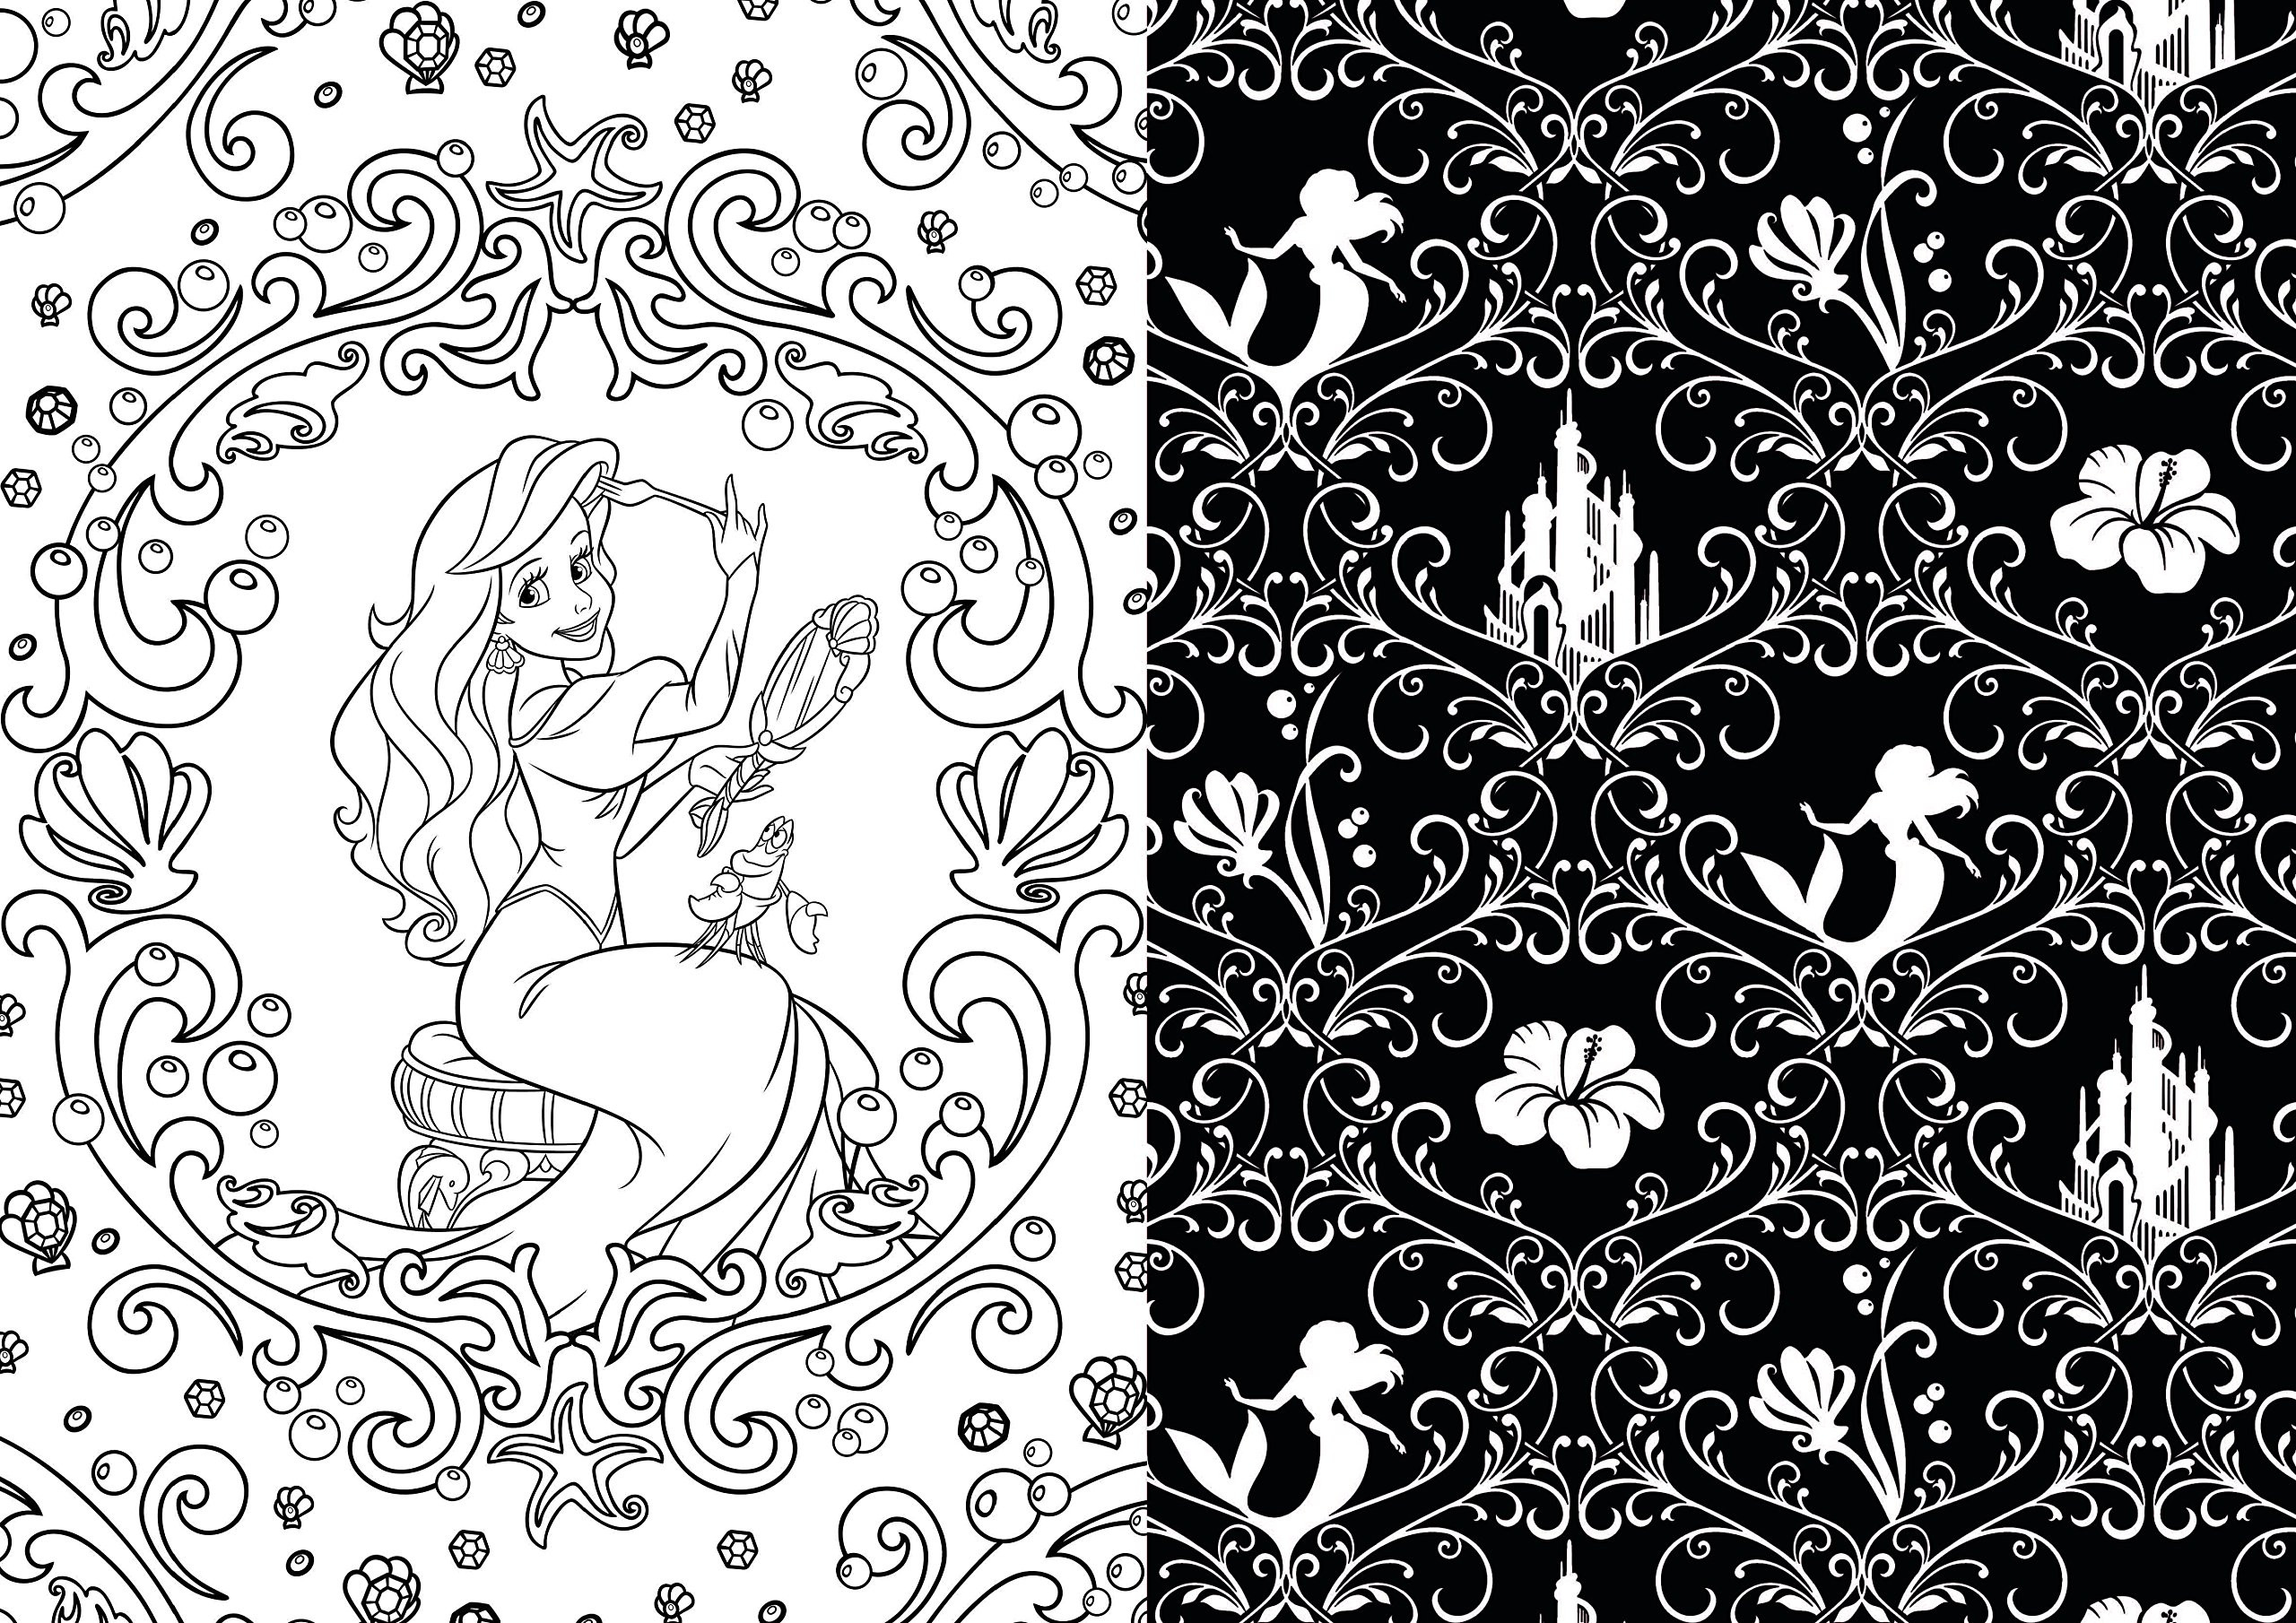 Best ideas about Adult Disney Coloring Books . Save or Pin Disney Adult Coloring Books Baby to Boomer Lifestyle Now.